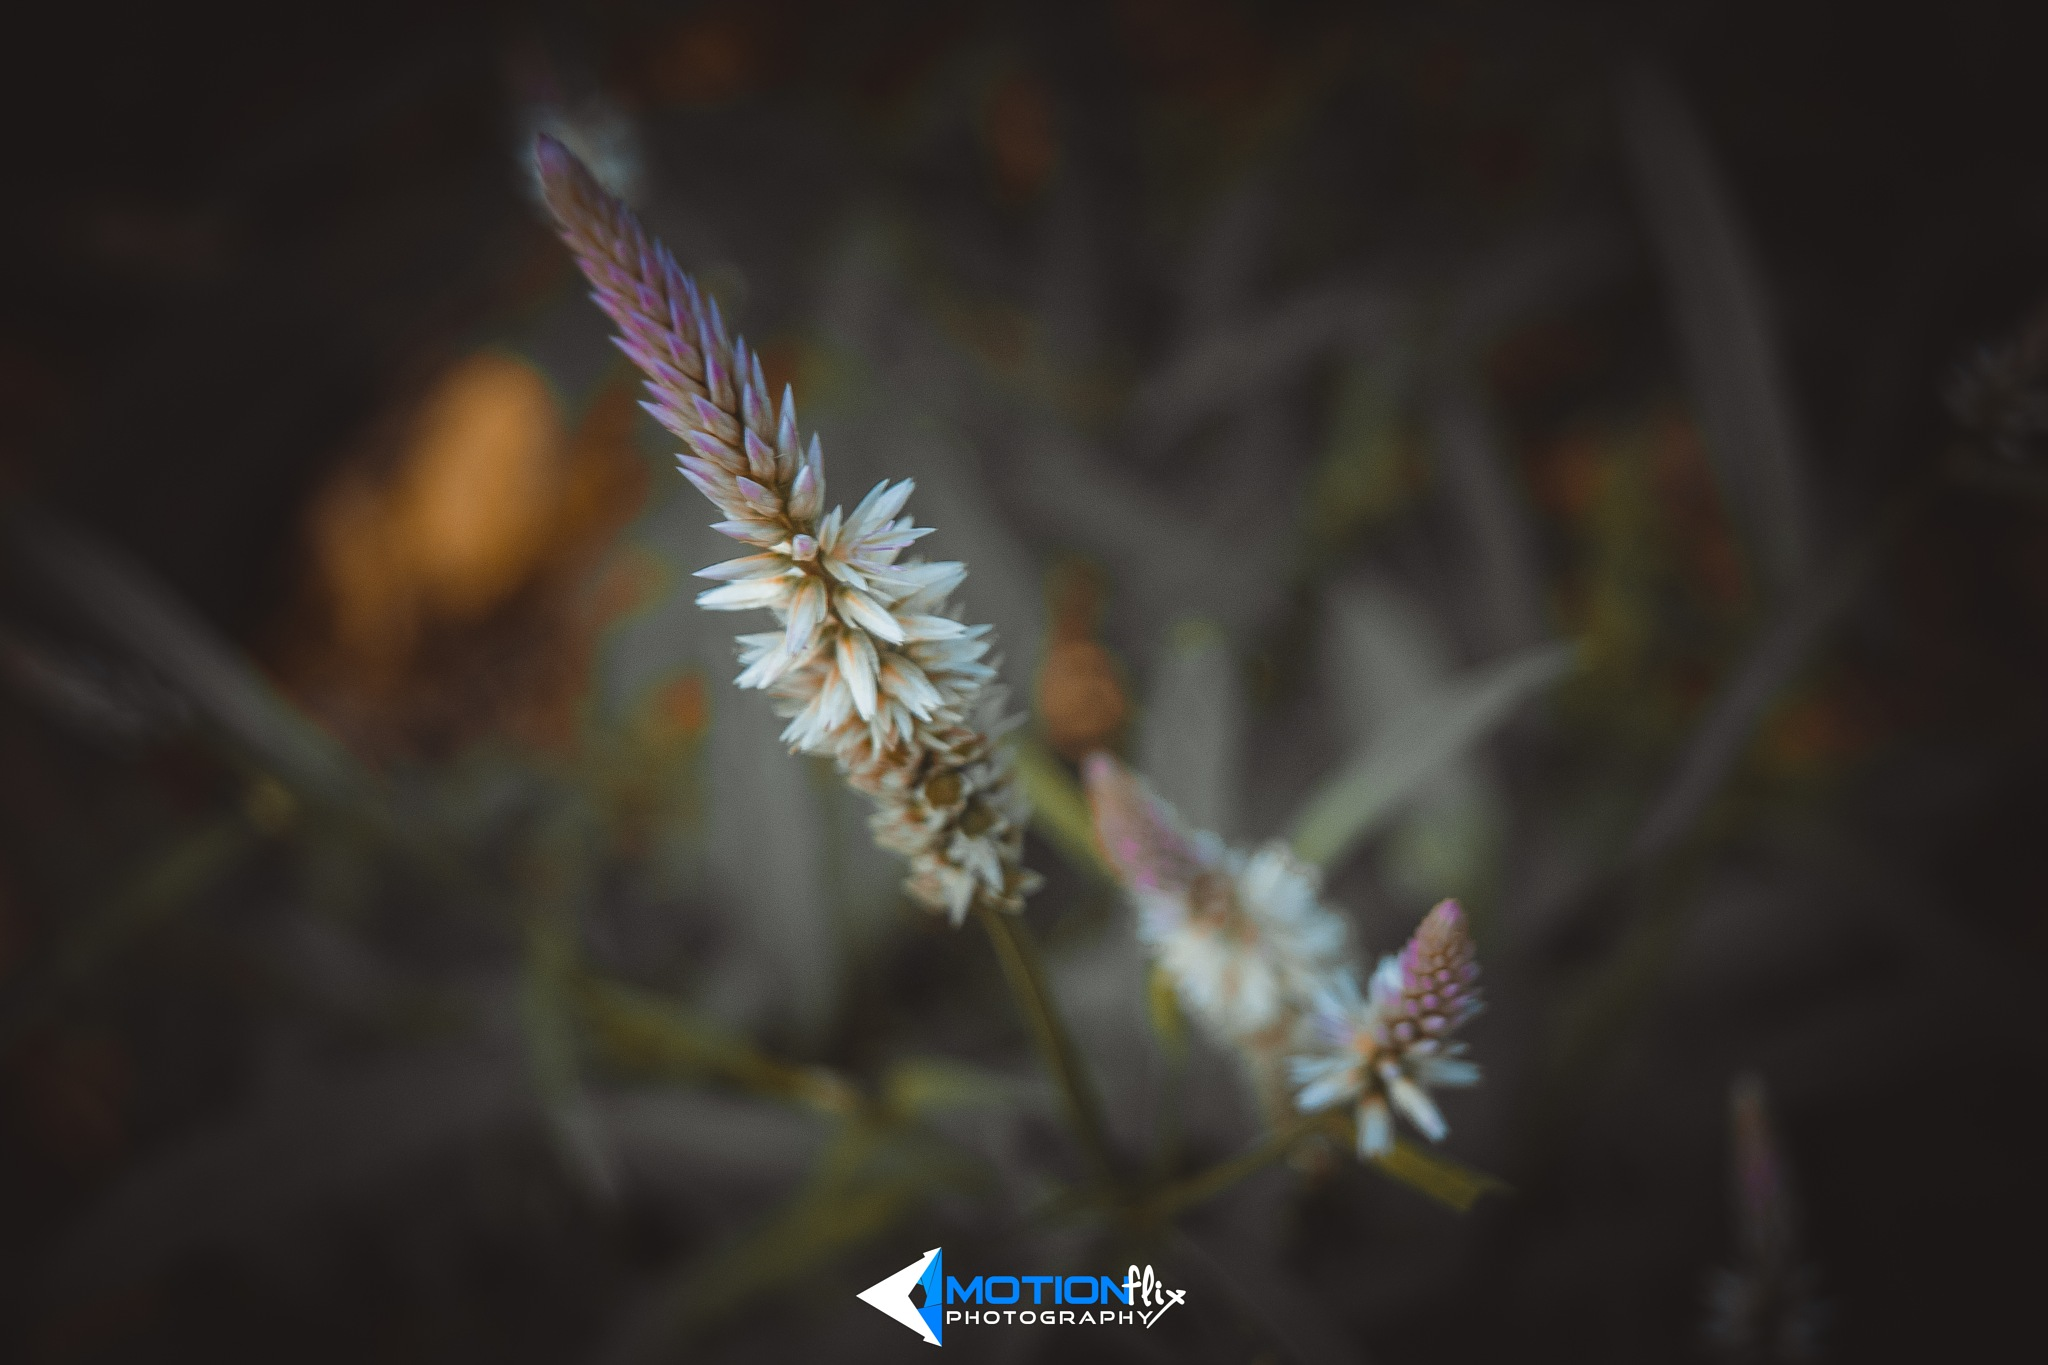 Beauty of Nature by Motionflix photography